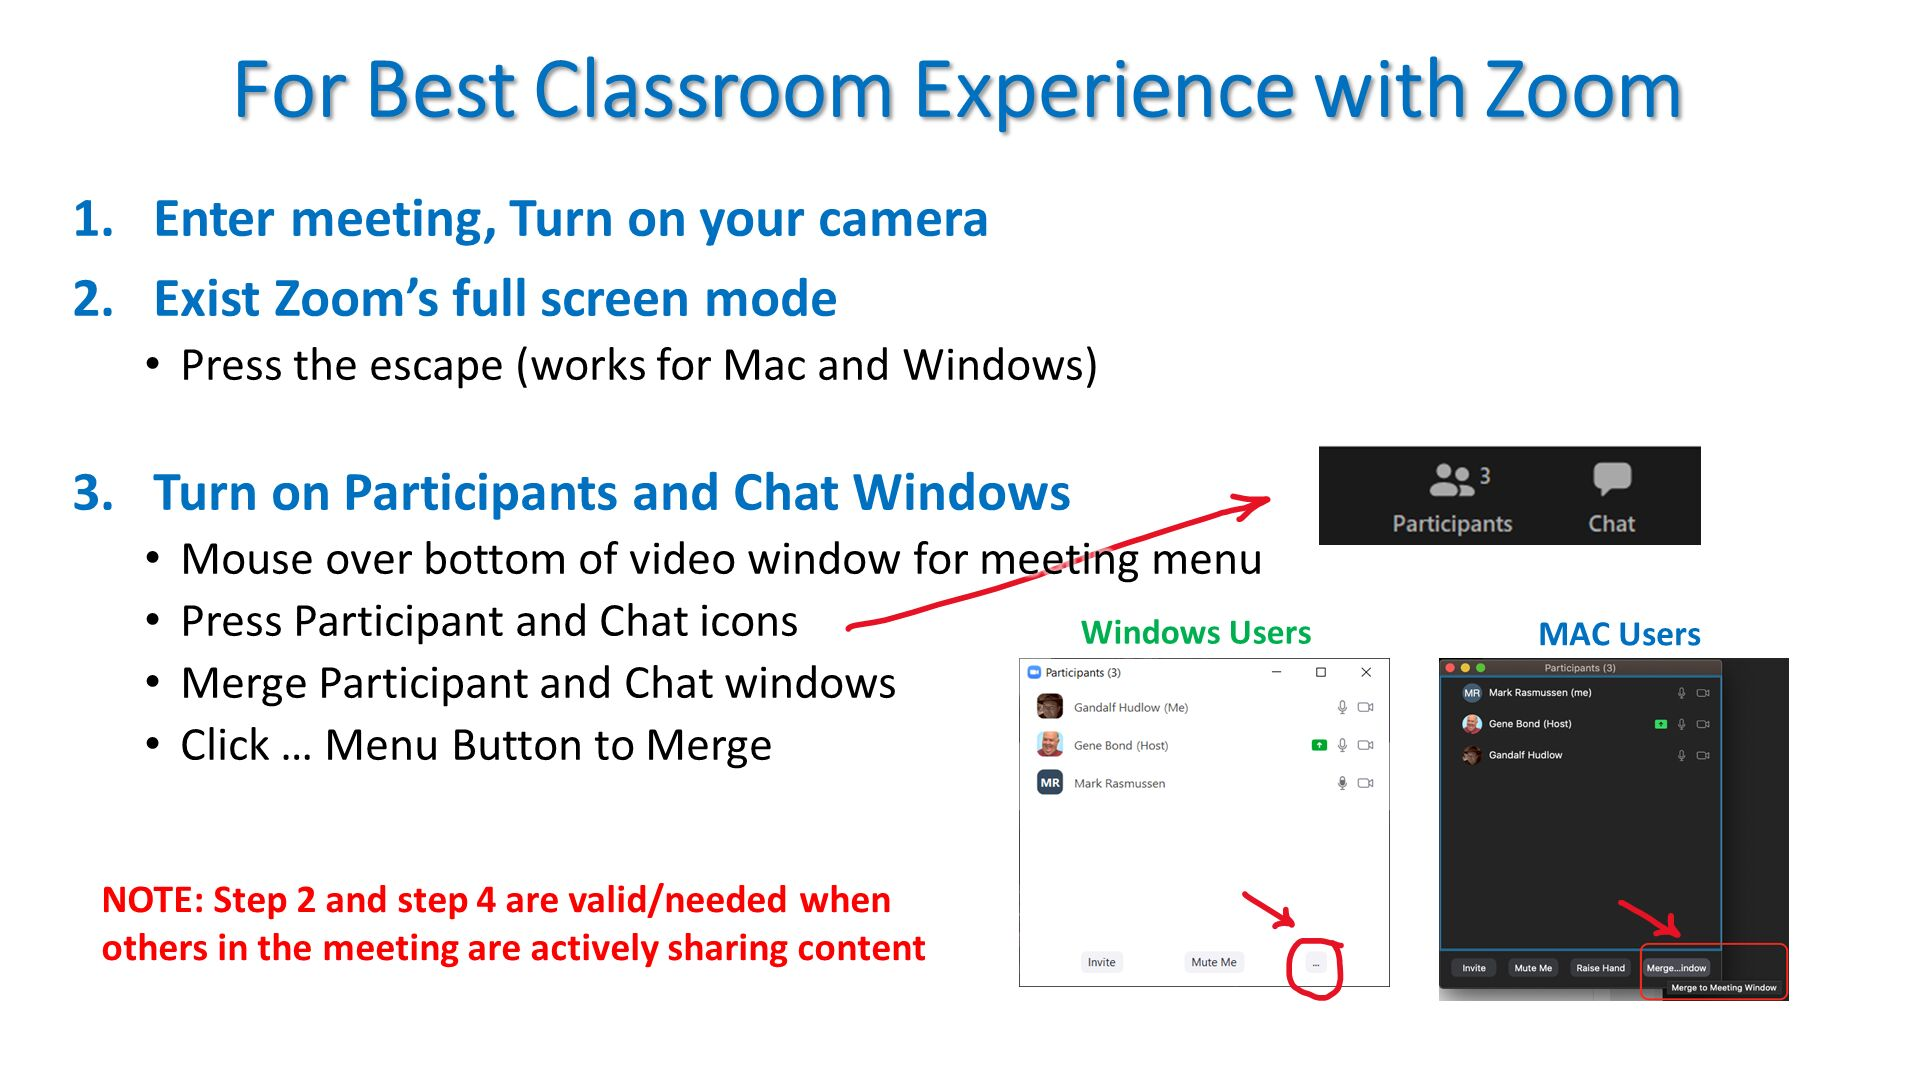 For Best Classroom Experience with Zoom. Enter meeting, Turn on your camera Exist Zoom's full screen mode Press the escape (works for Mac and Windows) Turn on Participants and Chat Windows Mouse over bottom of video window for meeting menu Press Participant and Chat icons Merge Participant and Chat windows  Click … Menu Button to Merge . NOTE: Step 2 and step 4 are valid/needed when others in the meeting are actively sharing content.